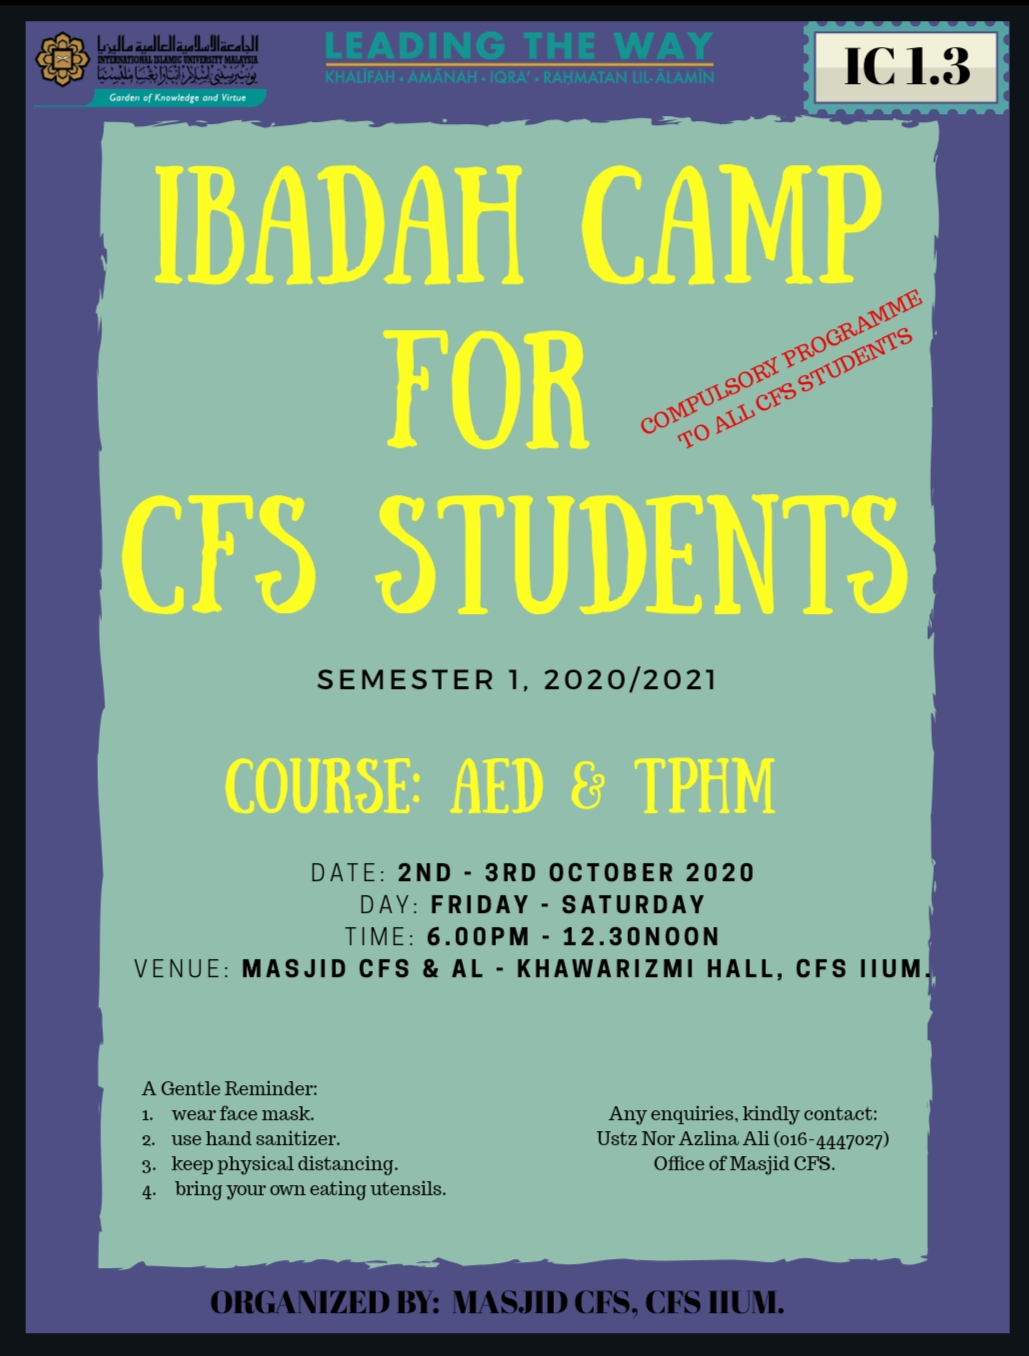 IBADAH CAMP FOR CFS STUDENTS (AED & TPHM)